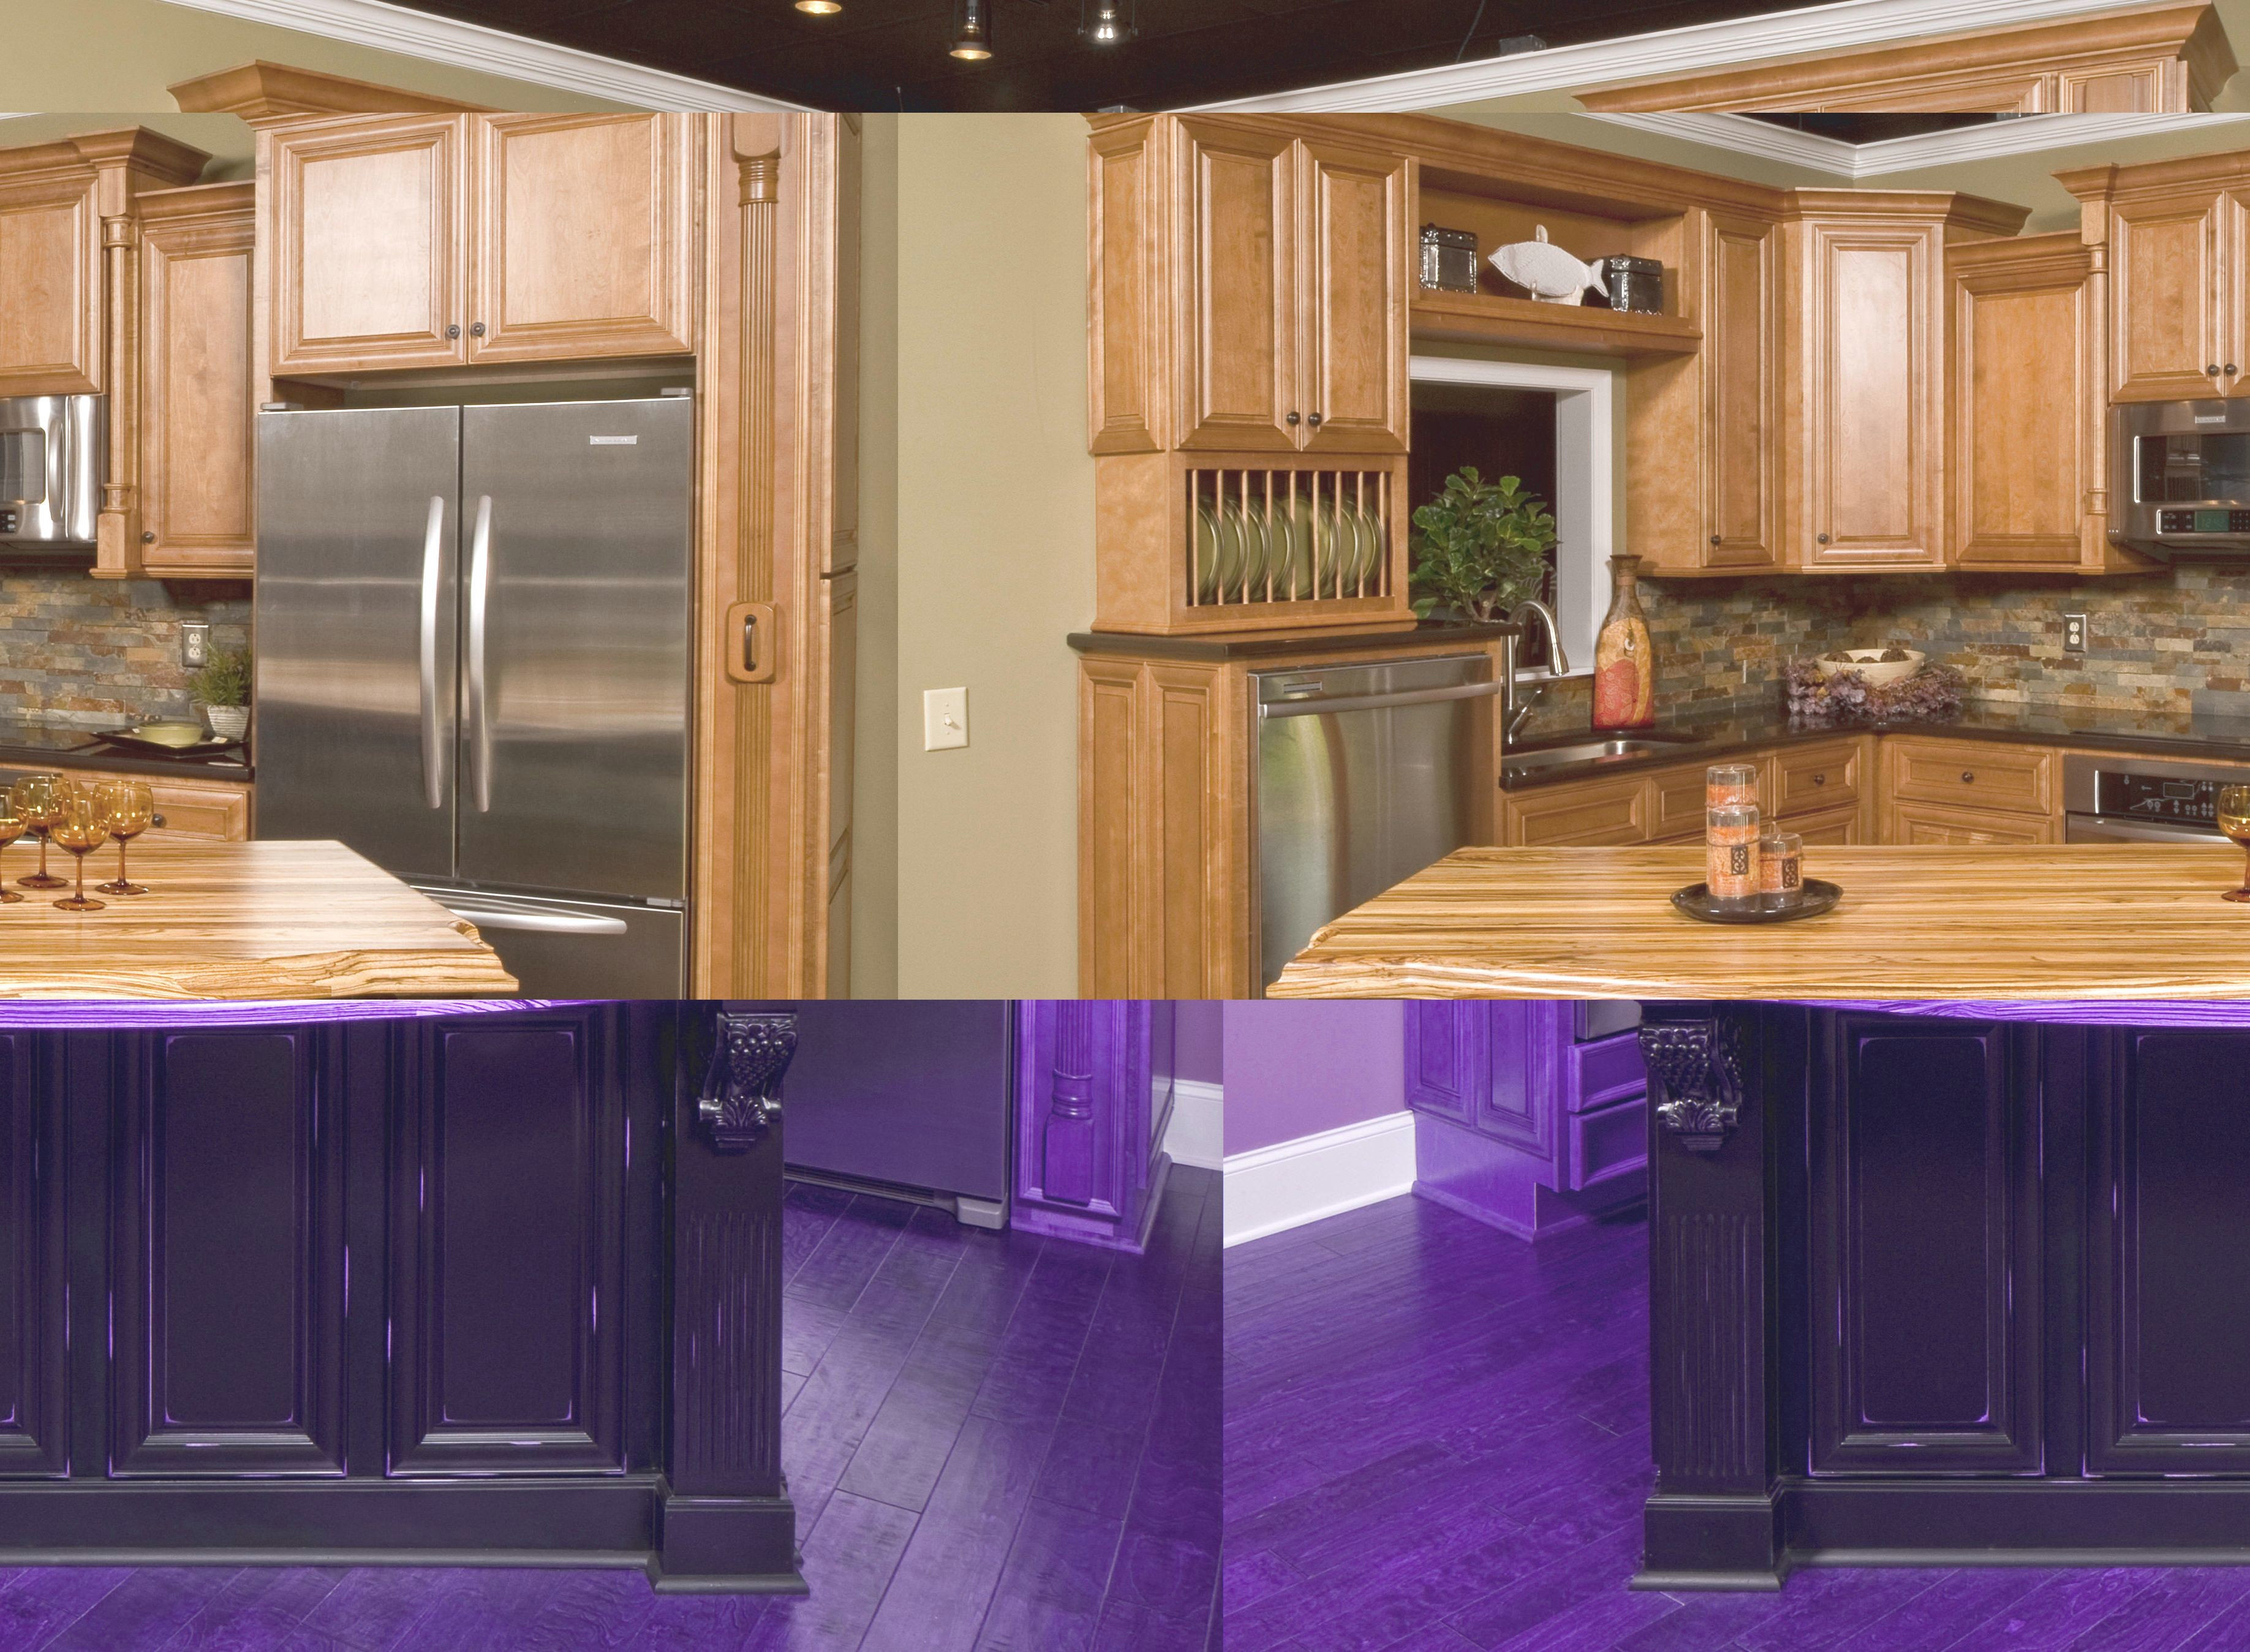 18 Fashionable Installing A Hardwood Floor Youtube 2021 free download installing a hardwood floor youtube of adorable how to install kitchen cabinets youtube on how to paint intended for stunning how to install kitchen cabinets youtube within youtube how to ha